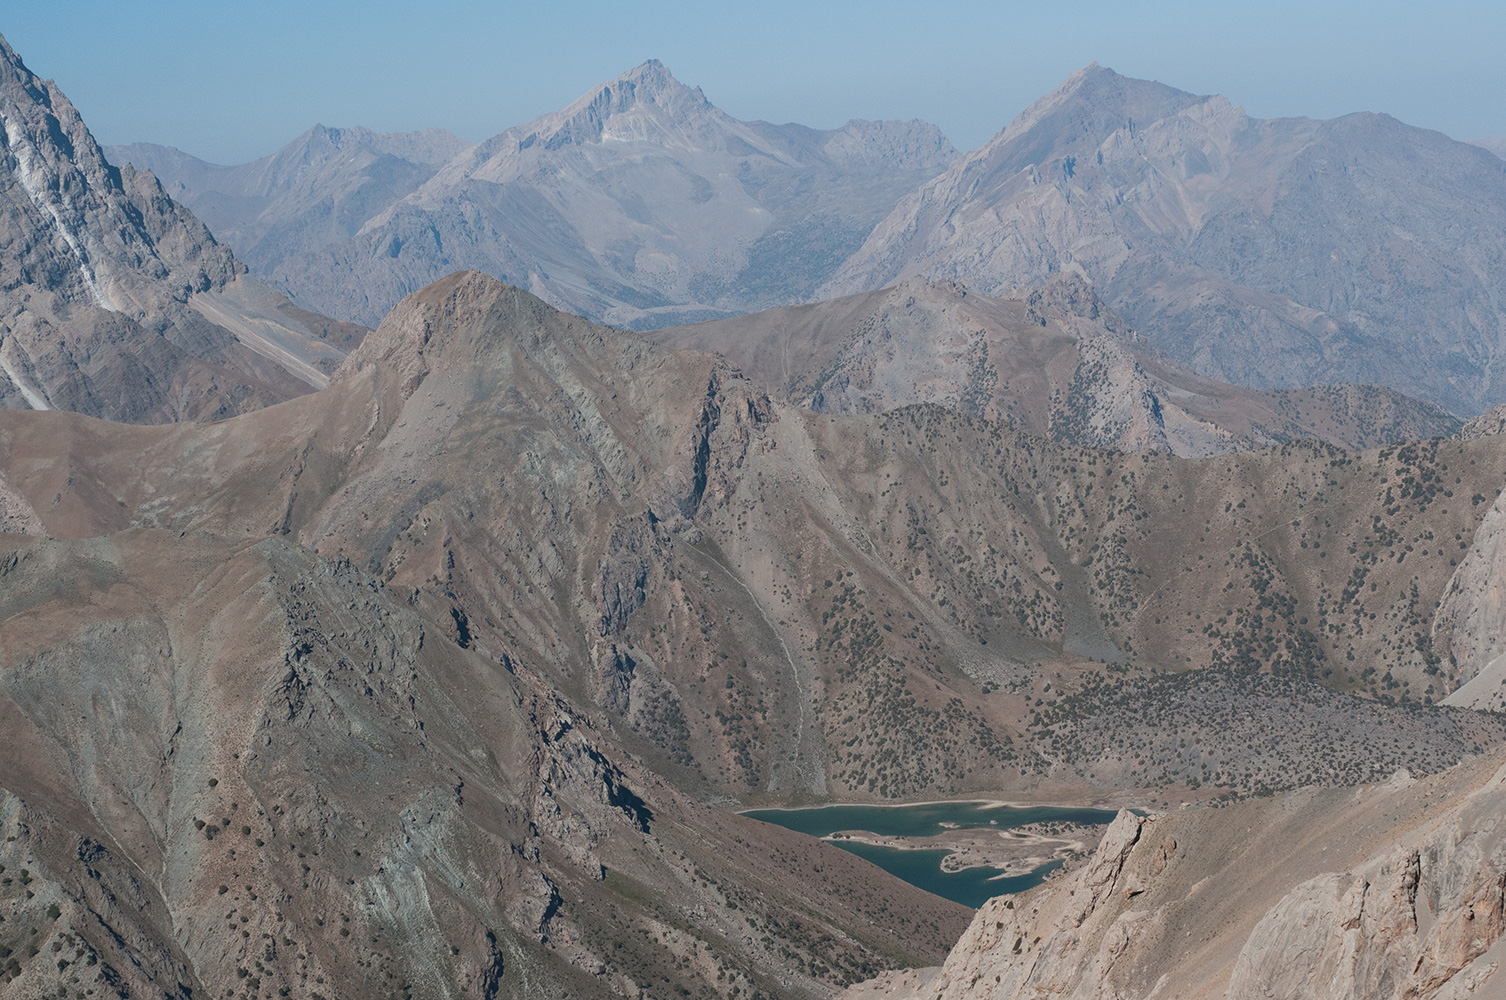 Telephoto from the Alaudin Pass, 3800m